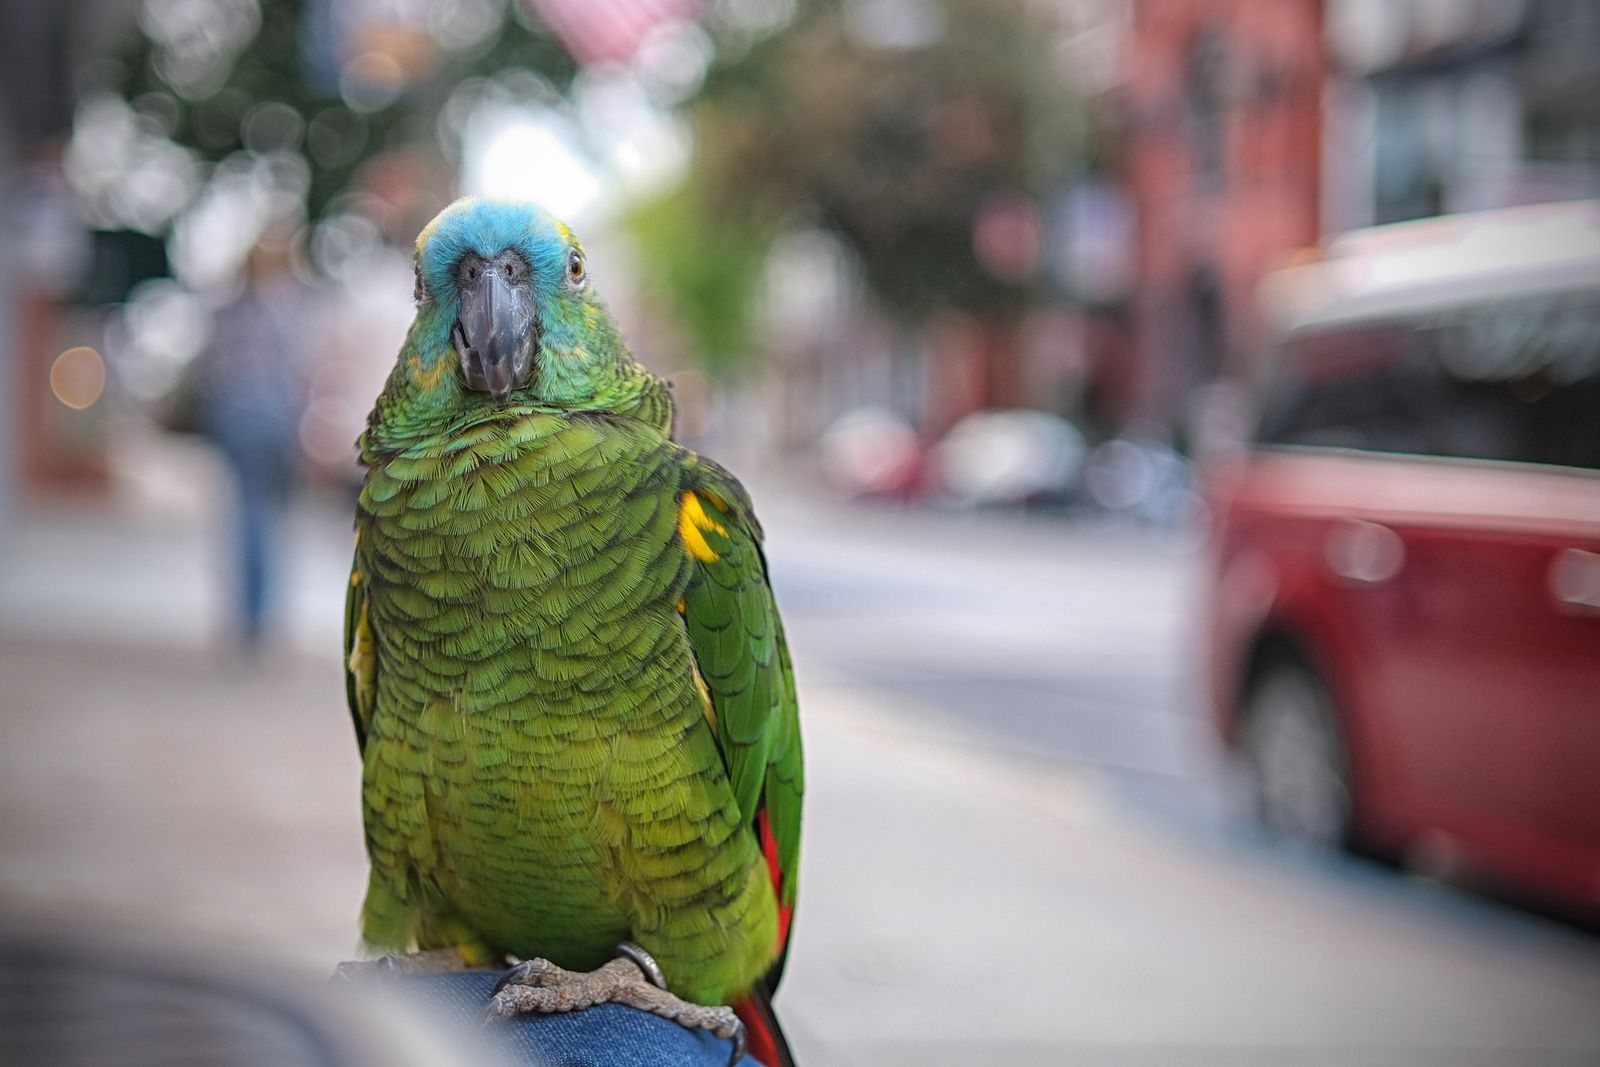 To Save Endangered Species, Should We Bring Them Into Our Cities